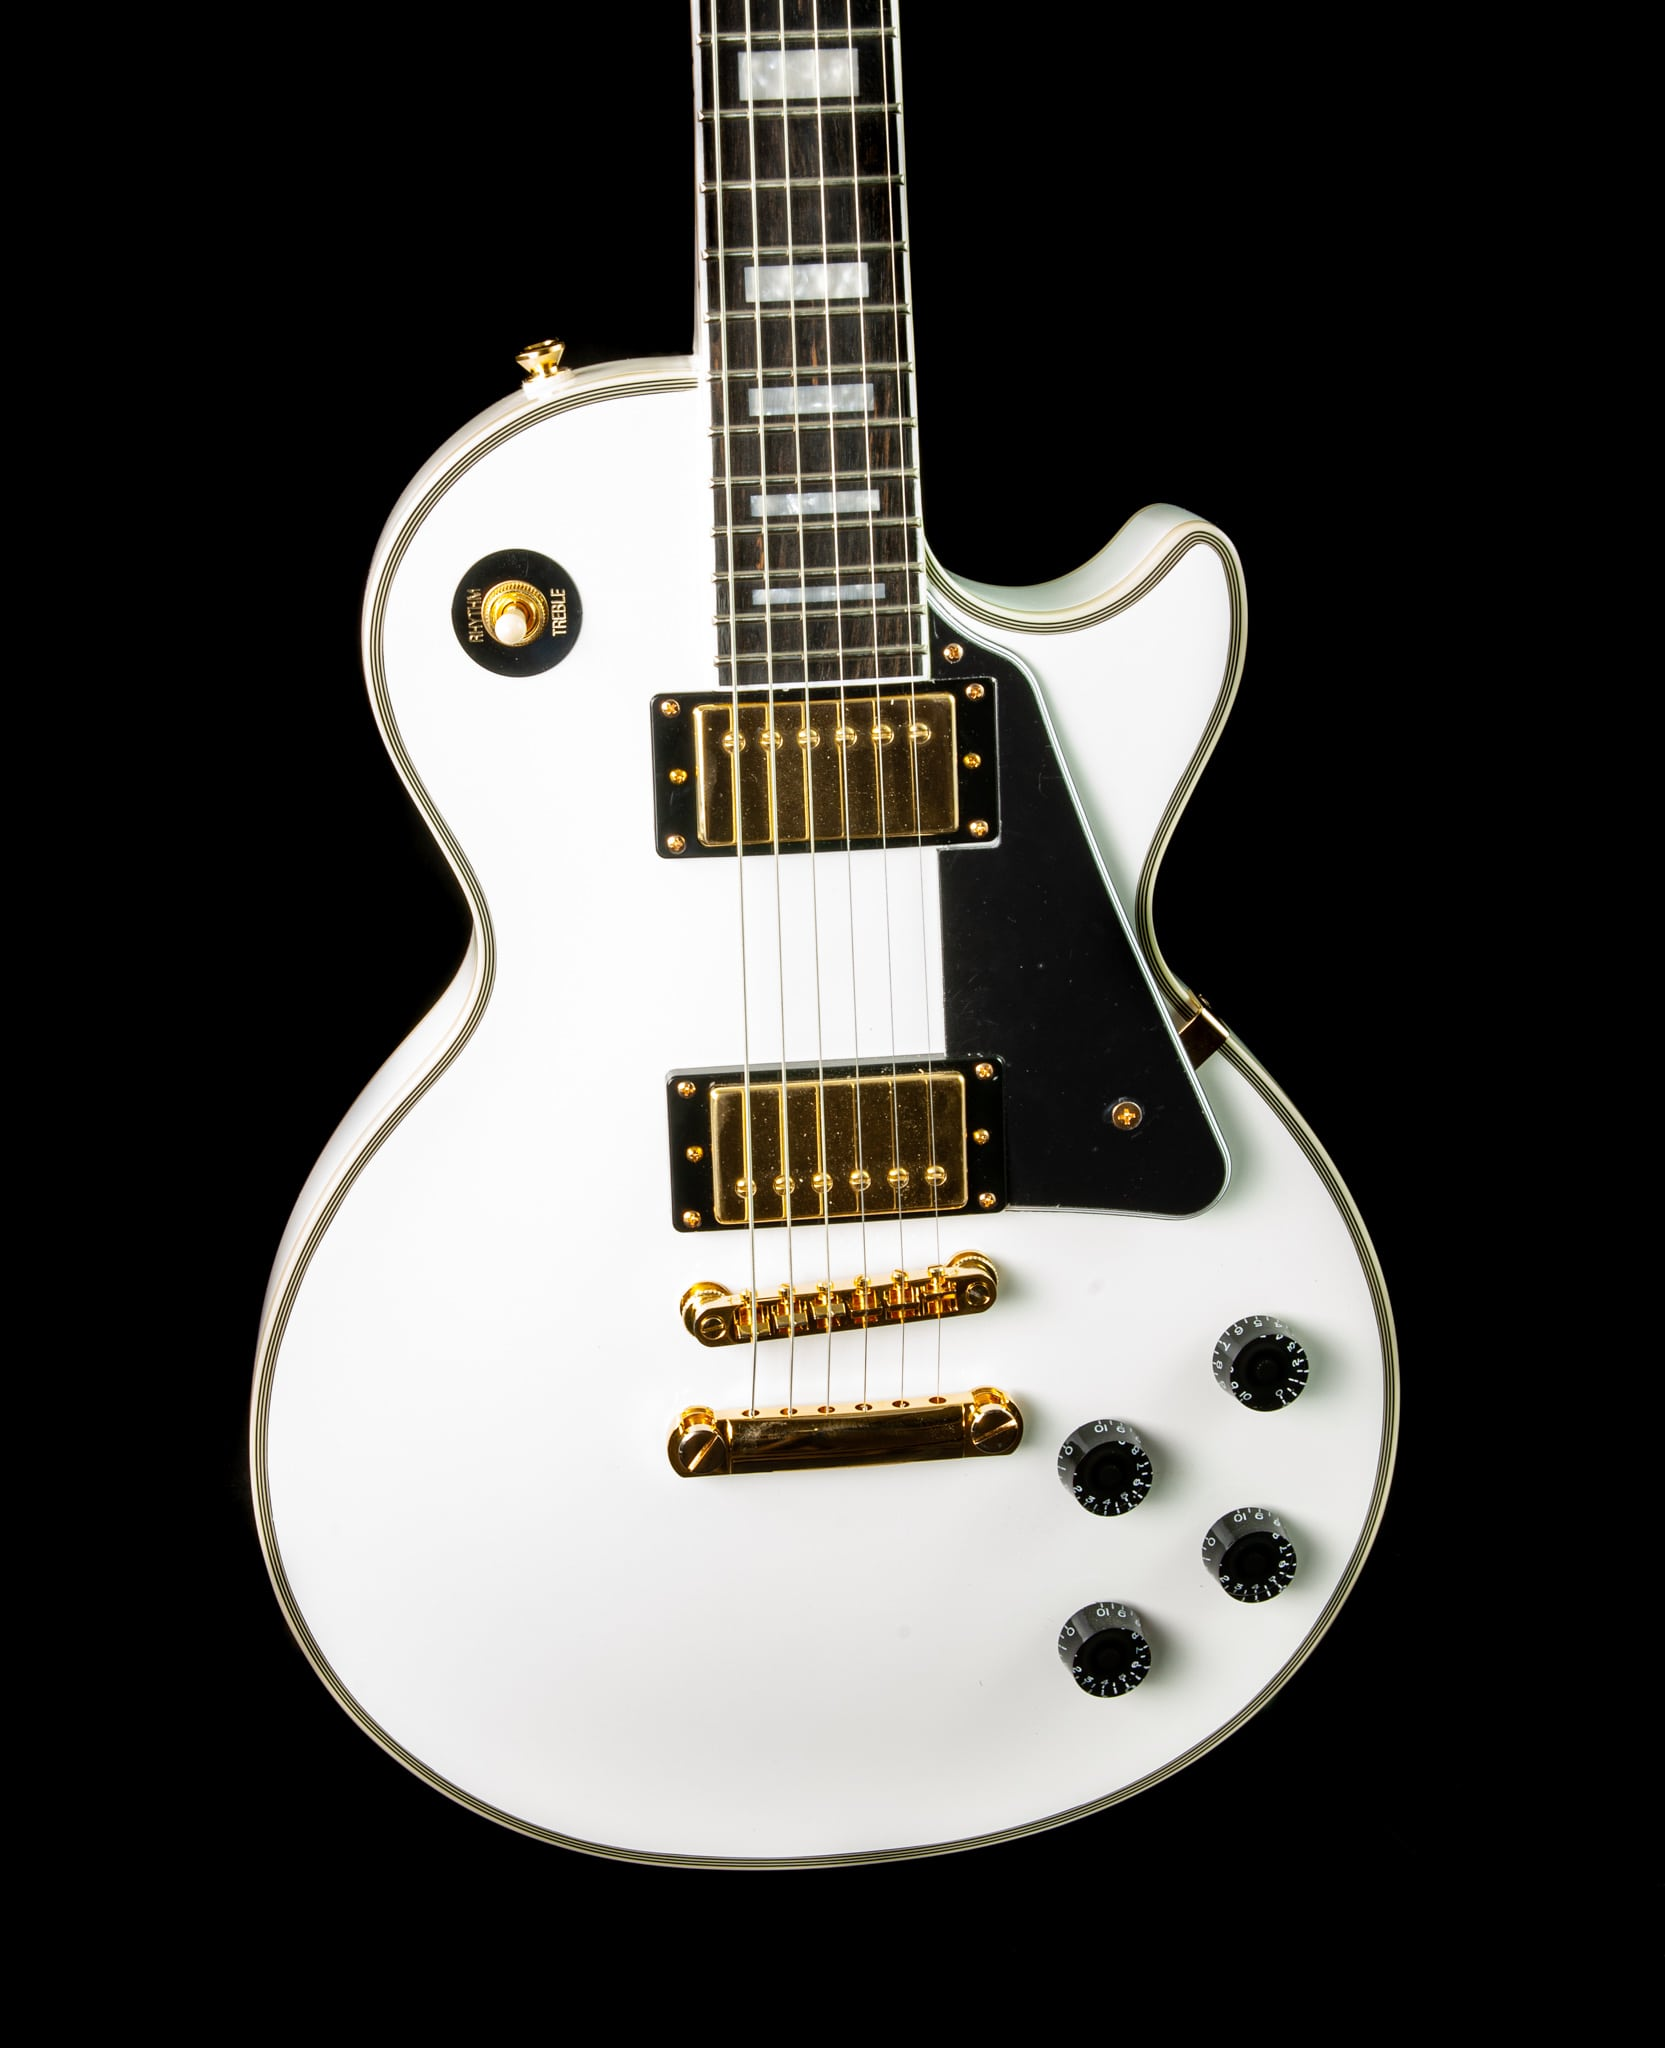 Epiphone -Inspired by Gibson- Les Paul Custom in Alpine White